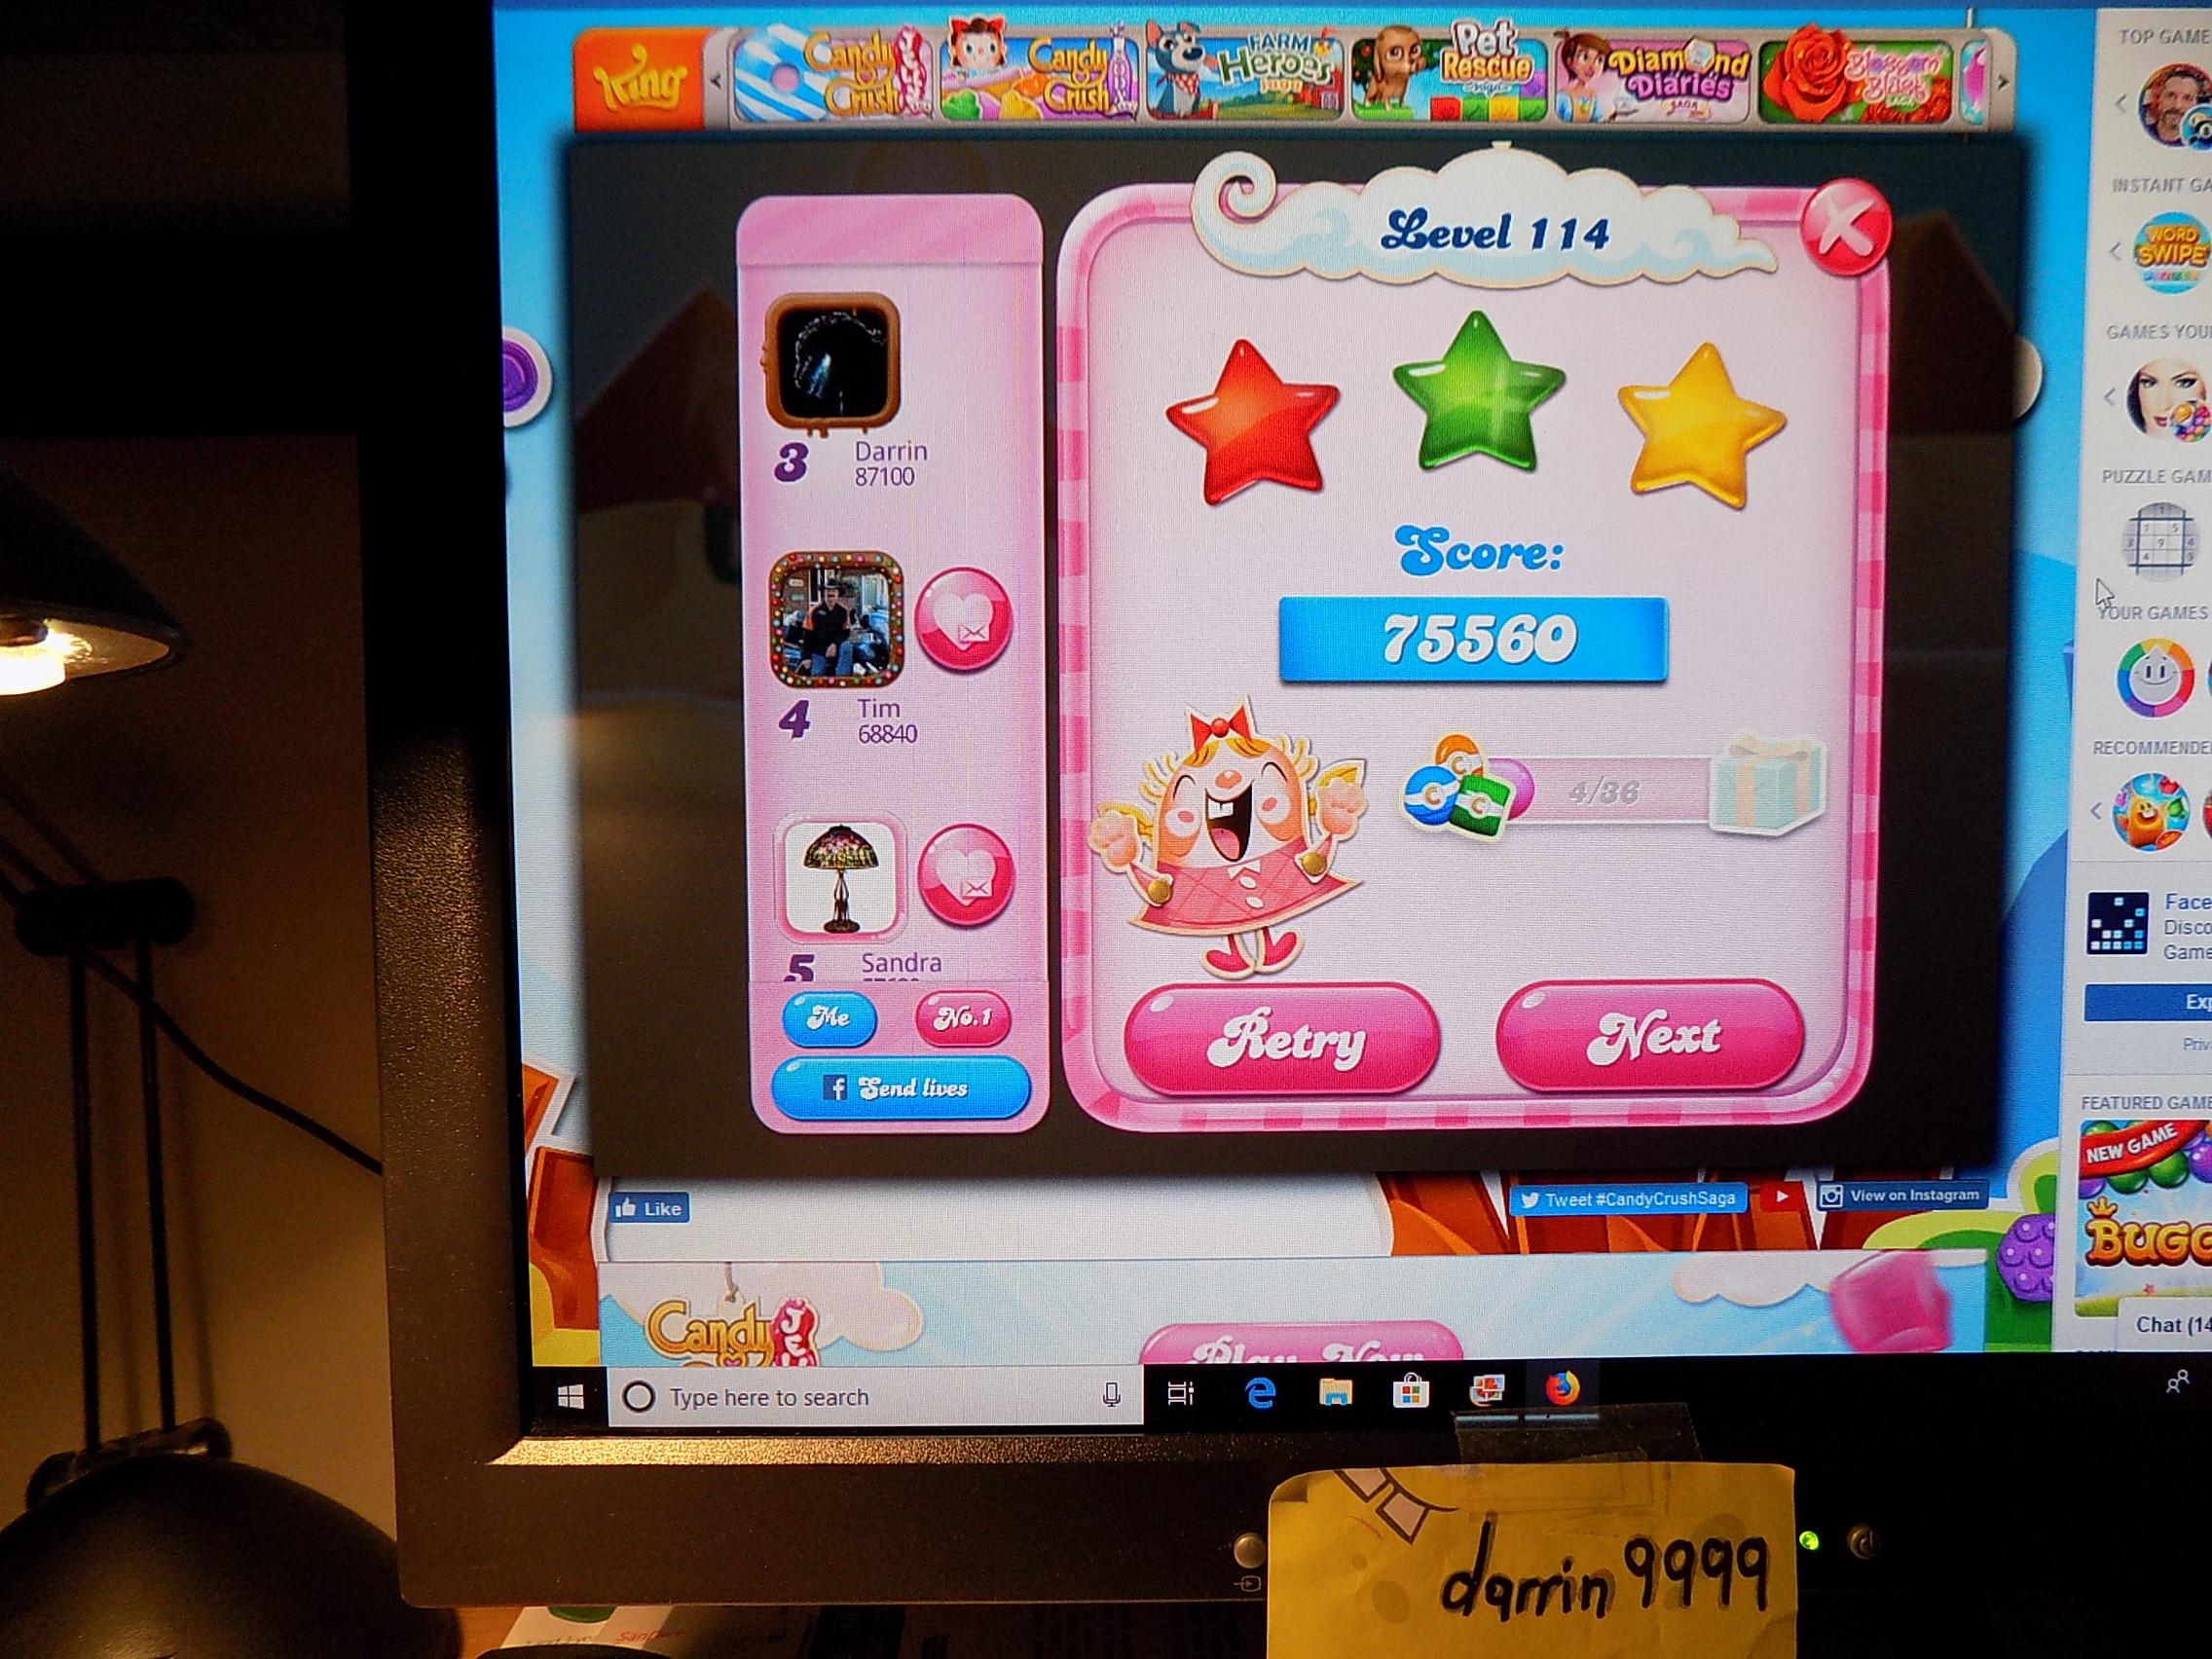 darrin9999: Candy Crush Saga: Level 114 (Web) 75,560 points on 2019-07-15 07:56:56